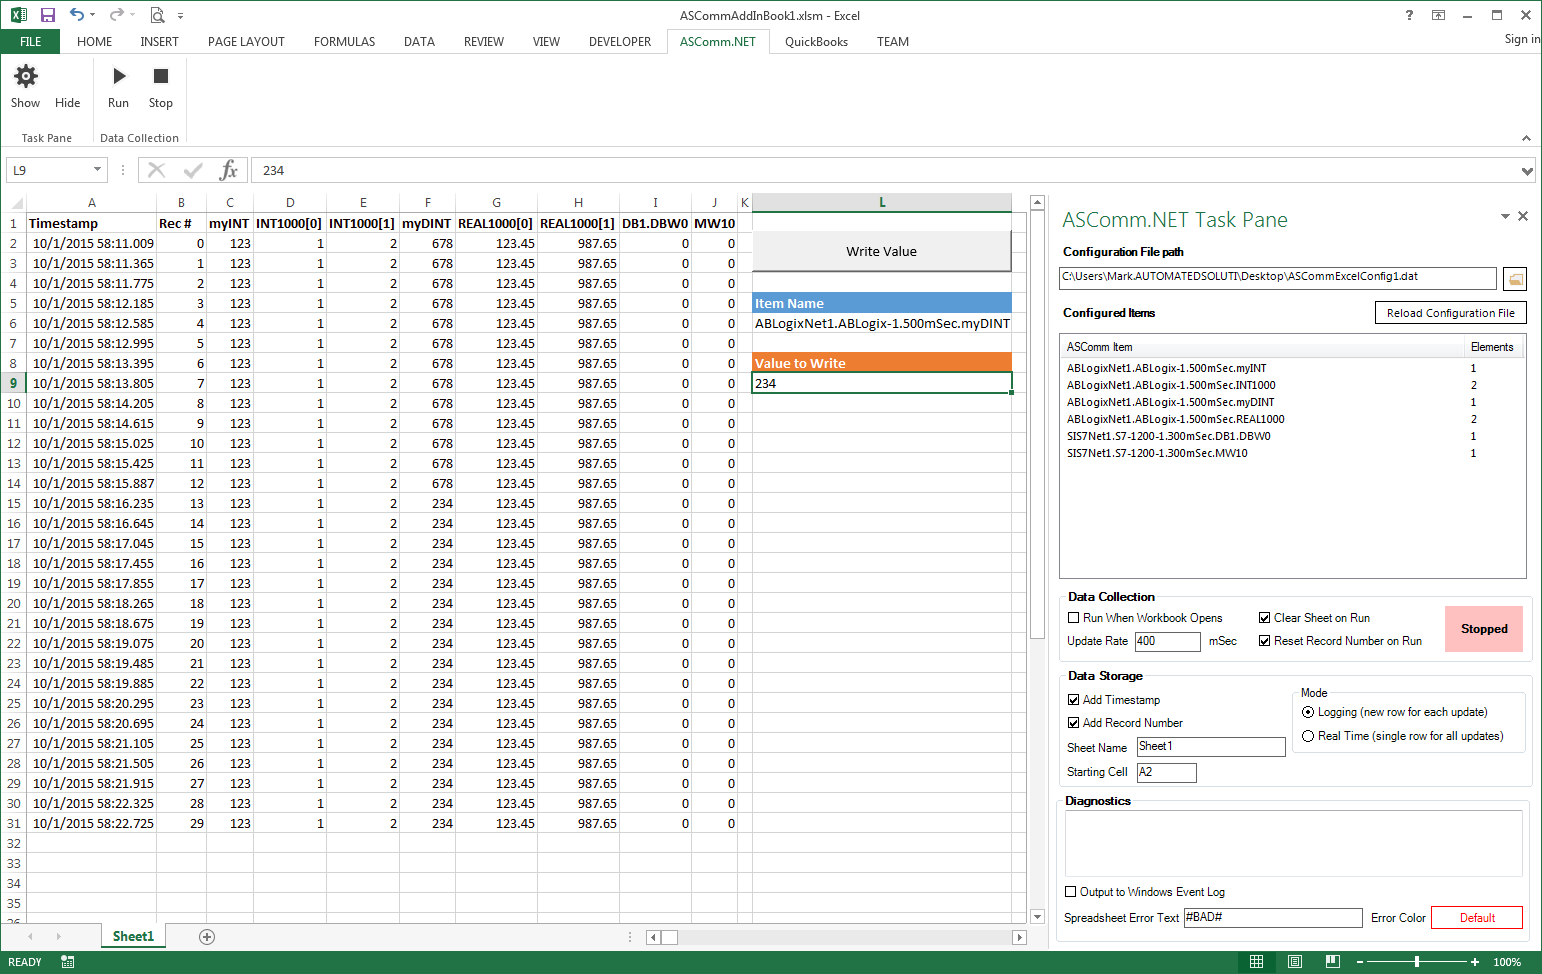 Excel Add-in for Modbus/TCP Data Logging